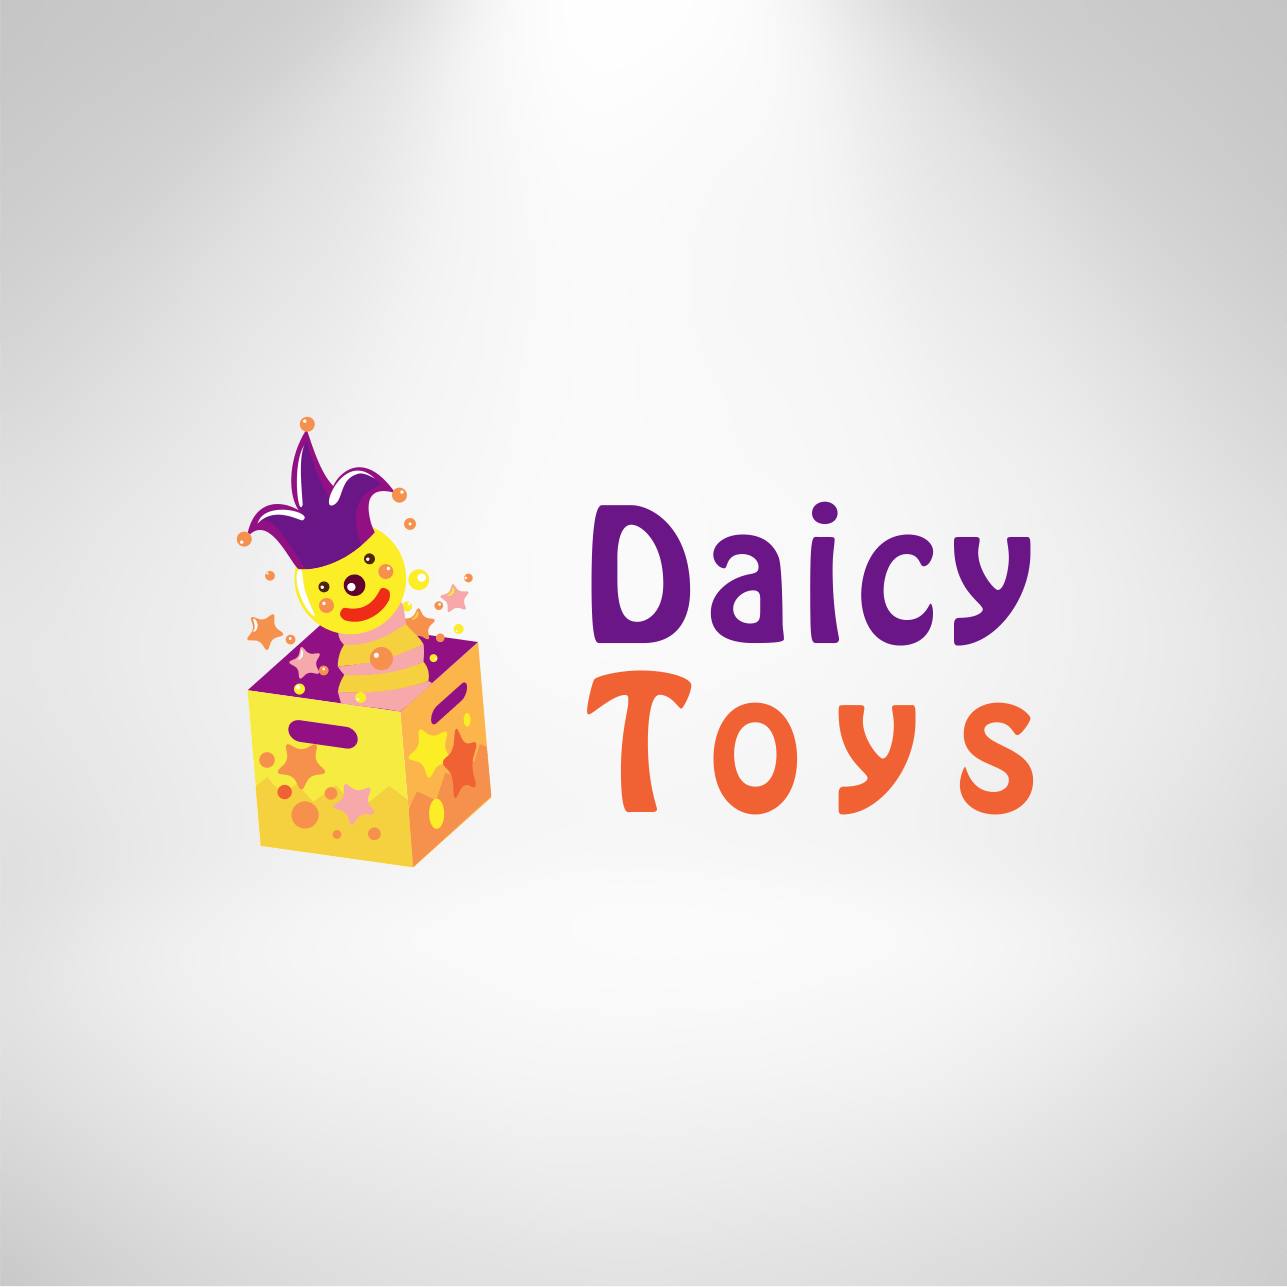 Design Online Shop Playful Modern Online Shopping Logo Design For Daicy Toys By